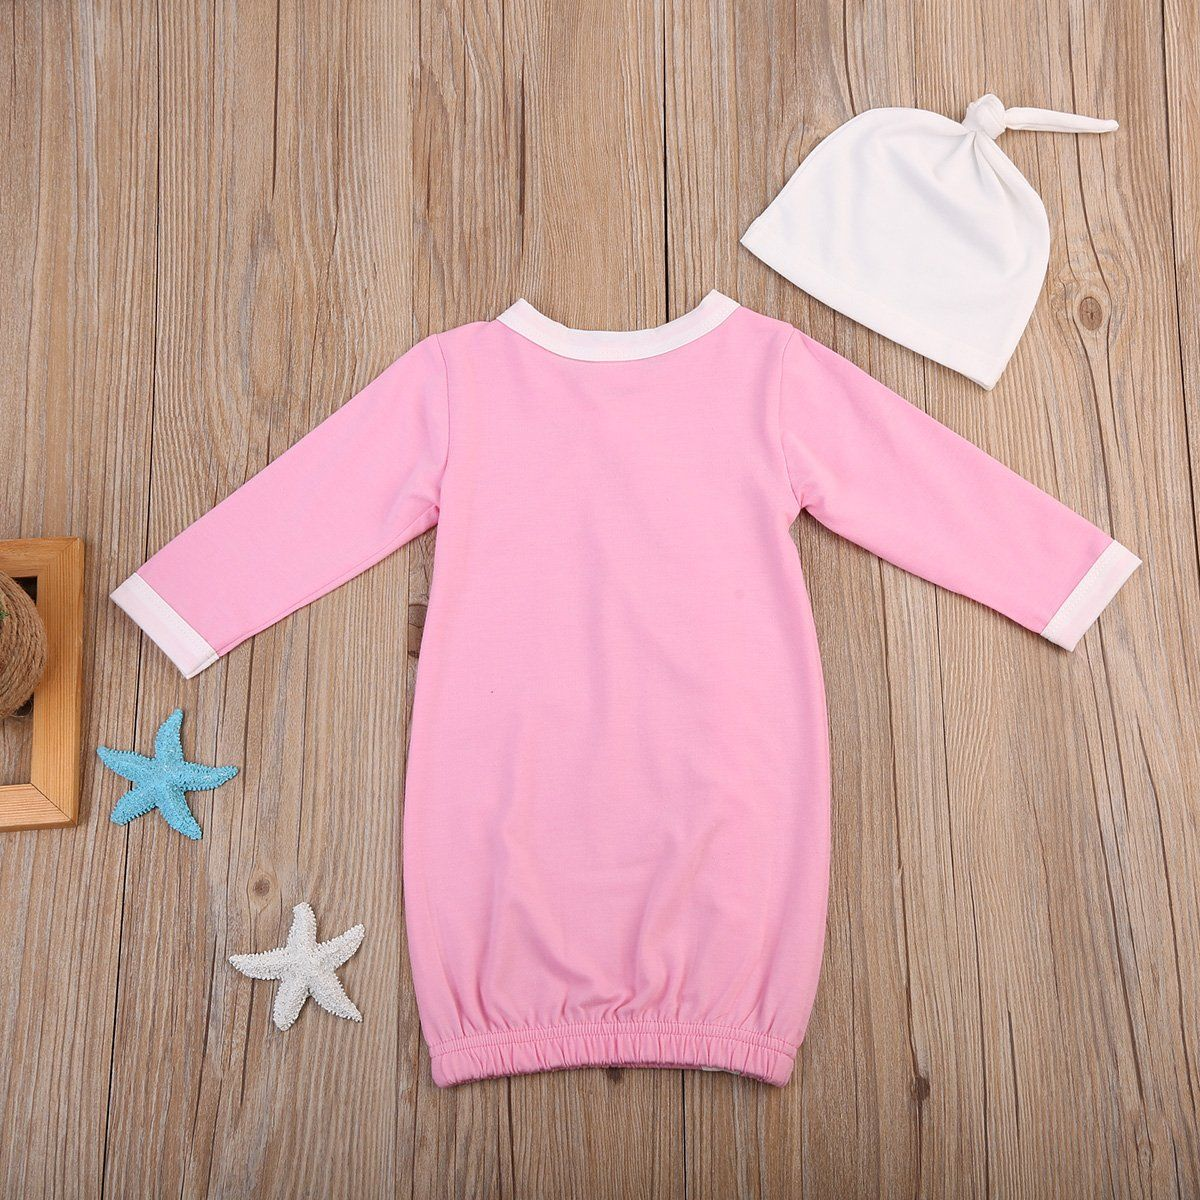 Newborn Baby Boy Girl Nightgowns Cute Long Sleeve Cotton Pajamas Sleeper  Wear With Hat 80612 Months Pink     Click image to review more details. 76e9b0fb73